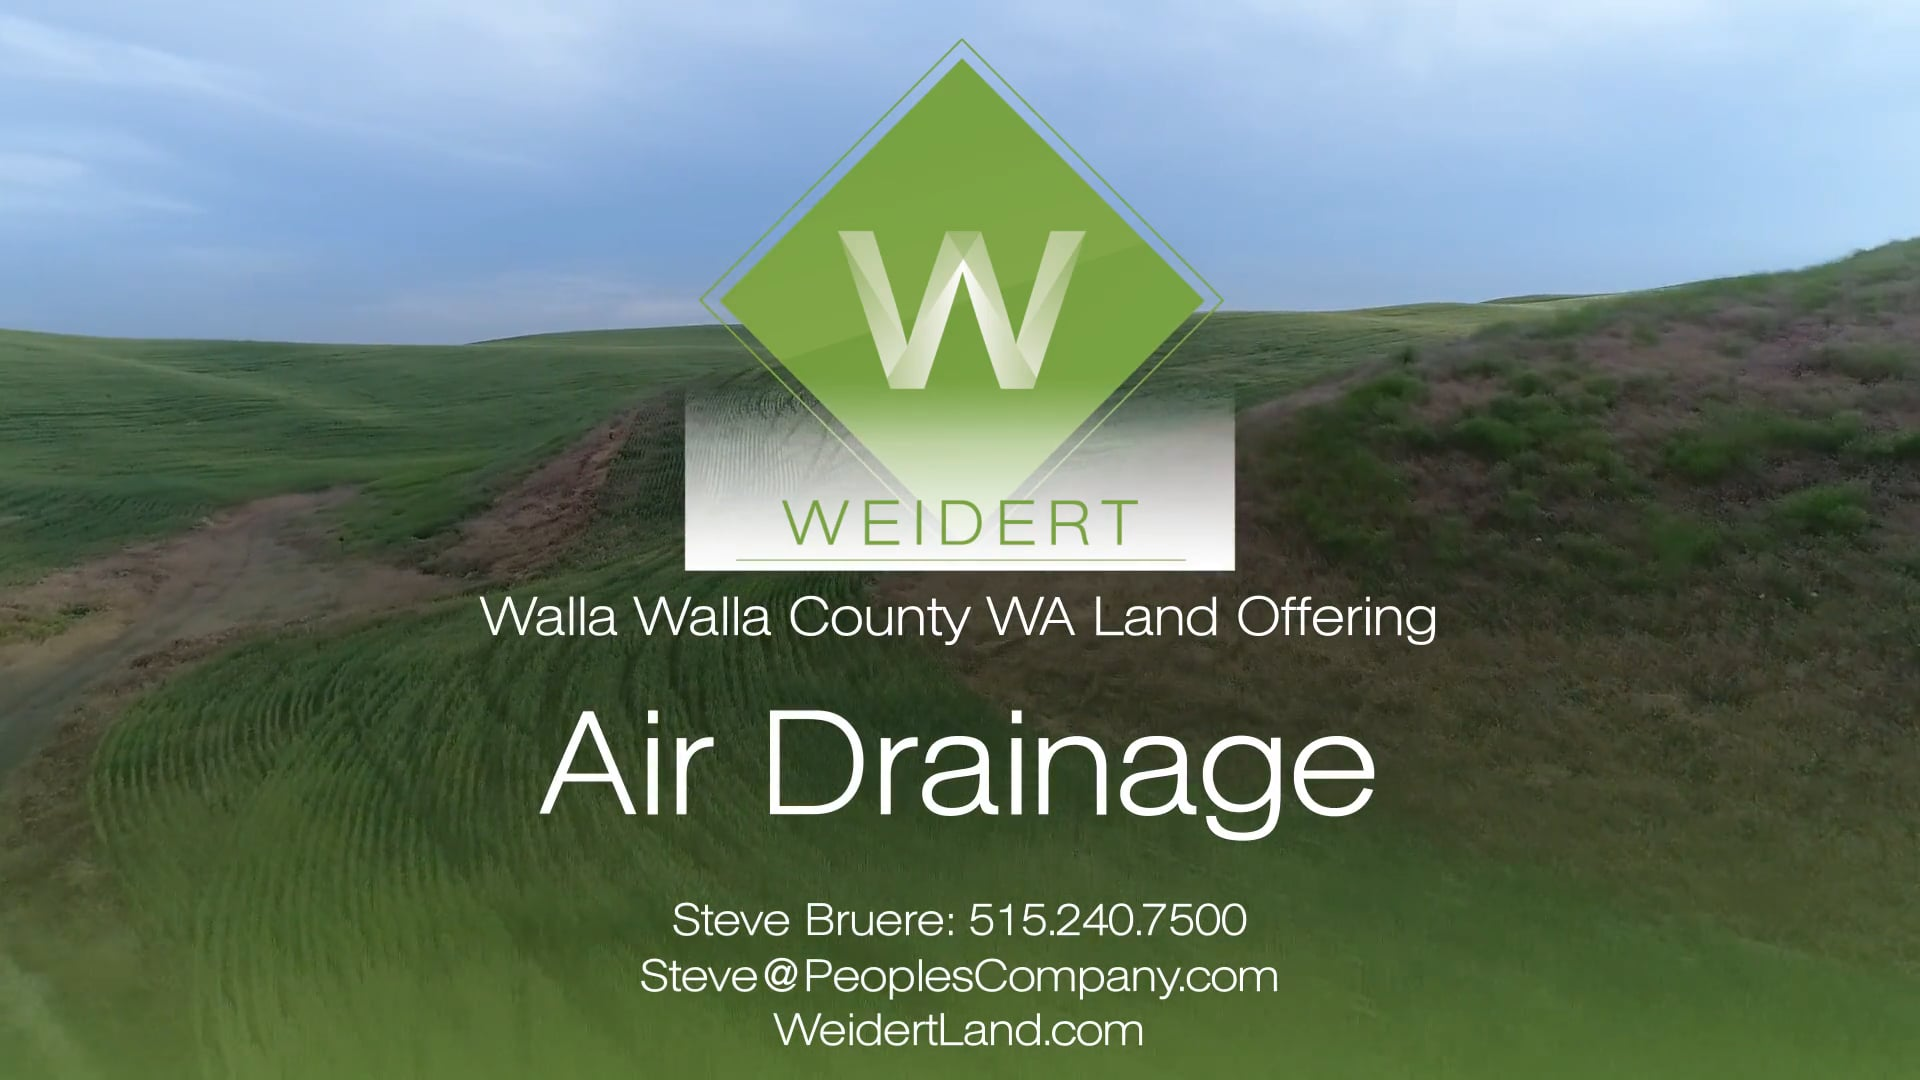 Air Drainage